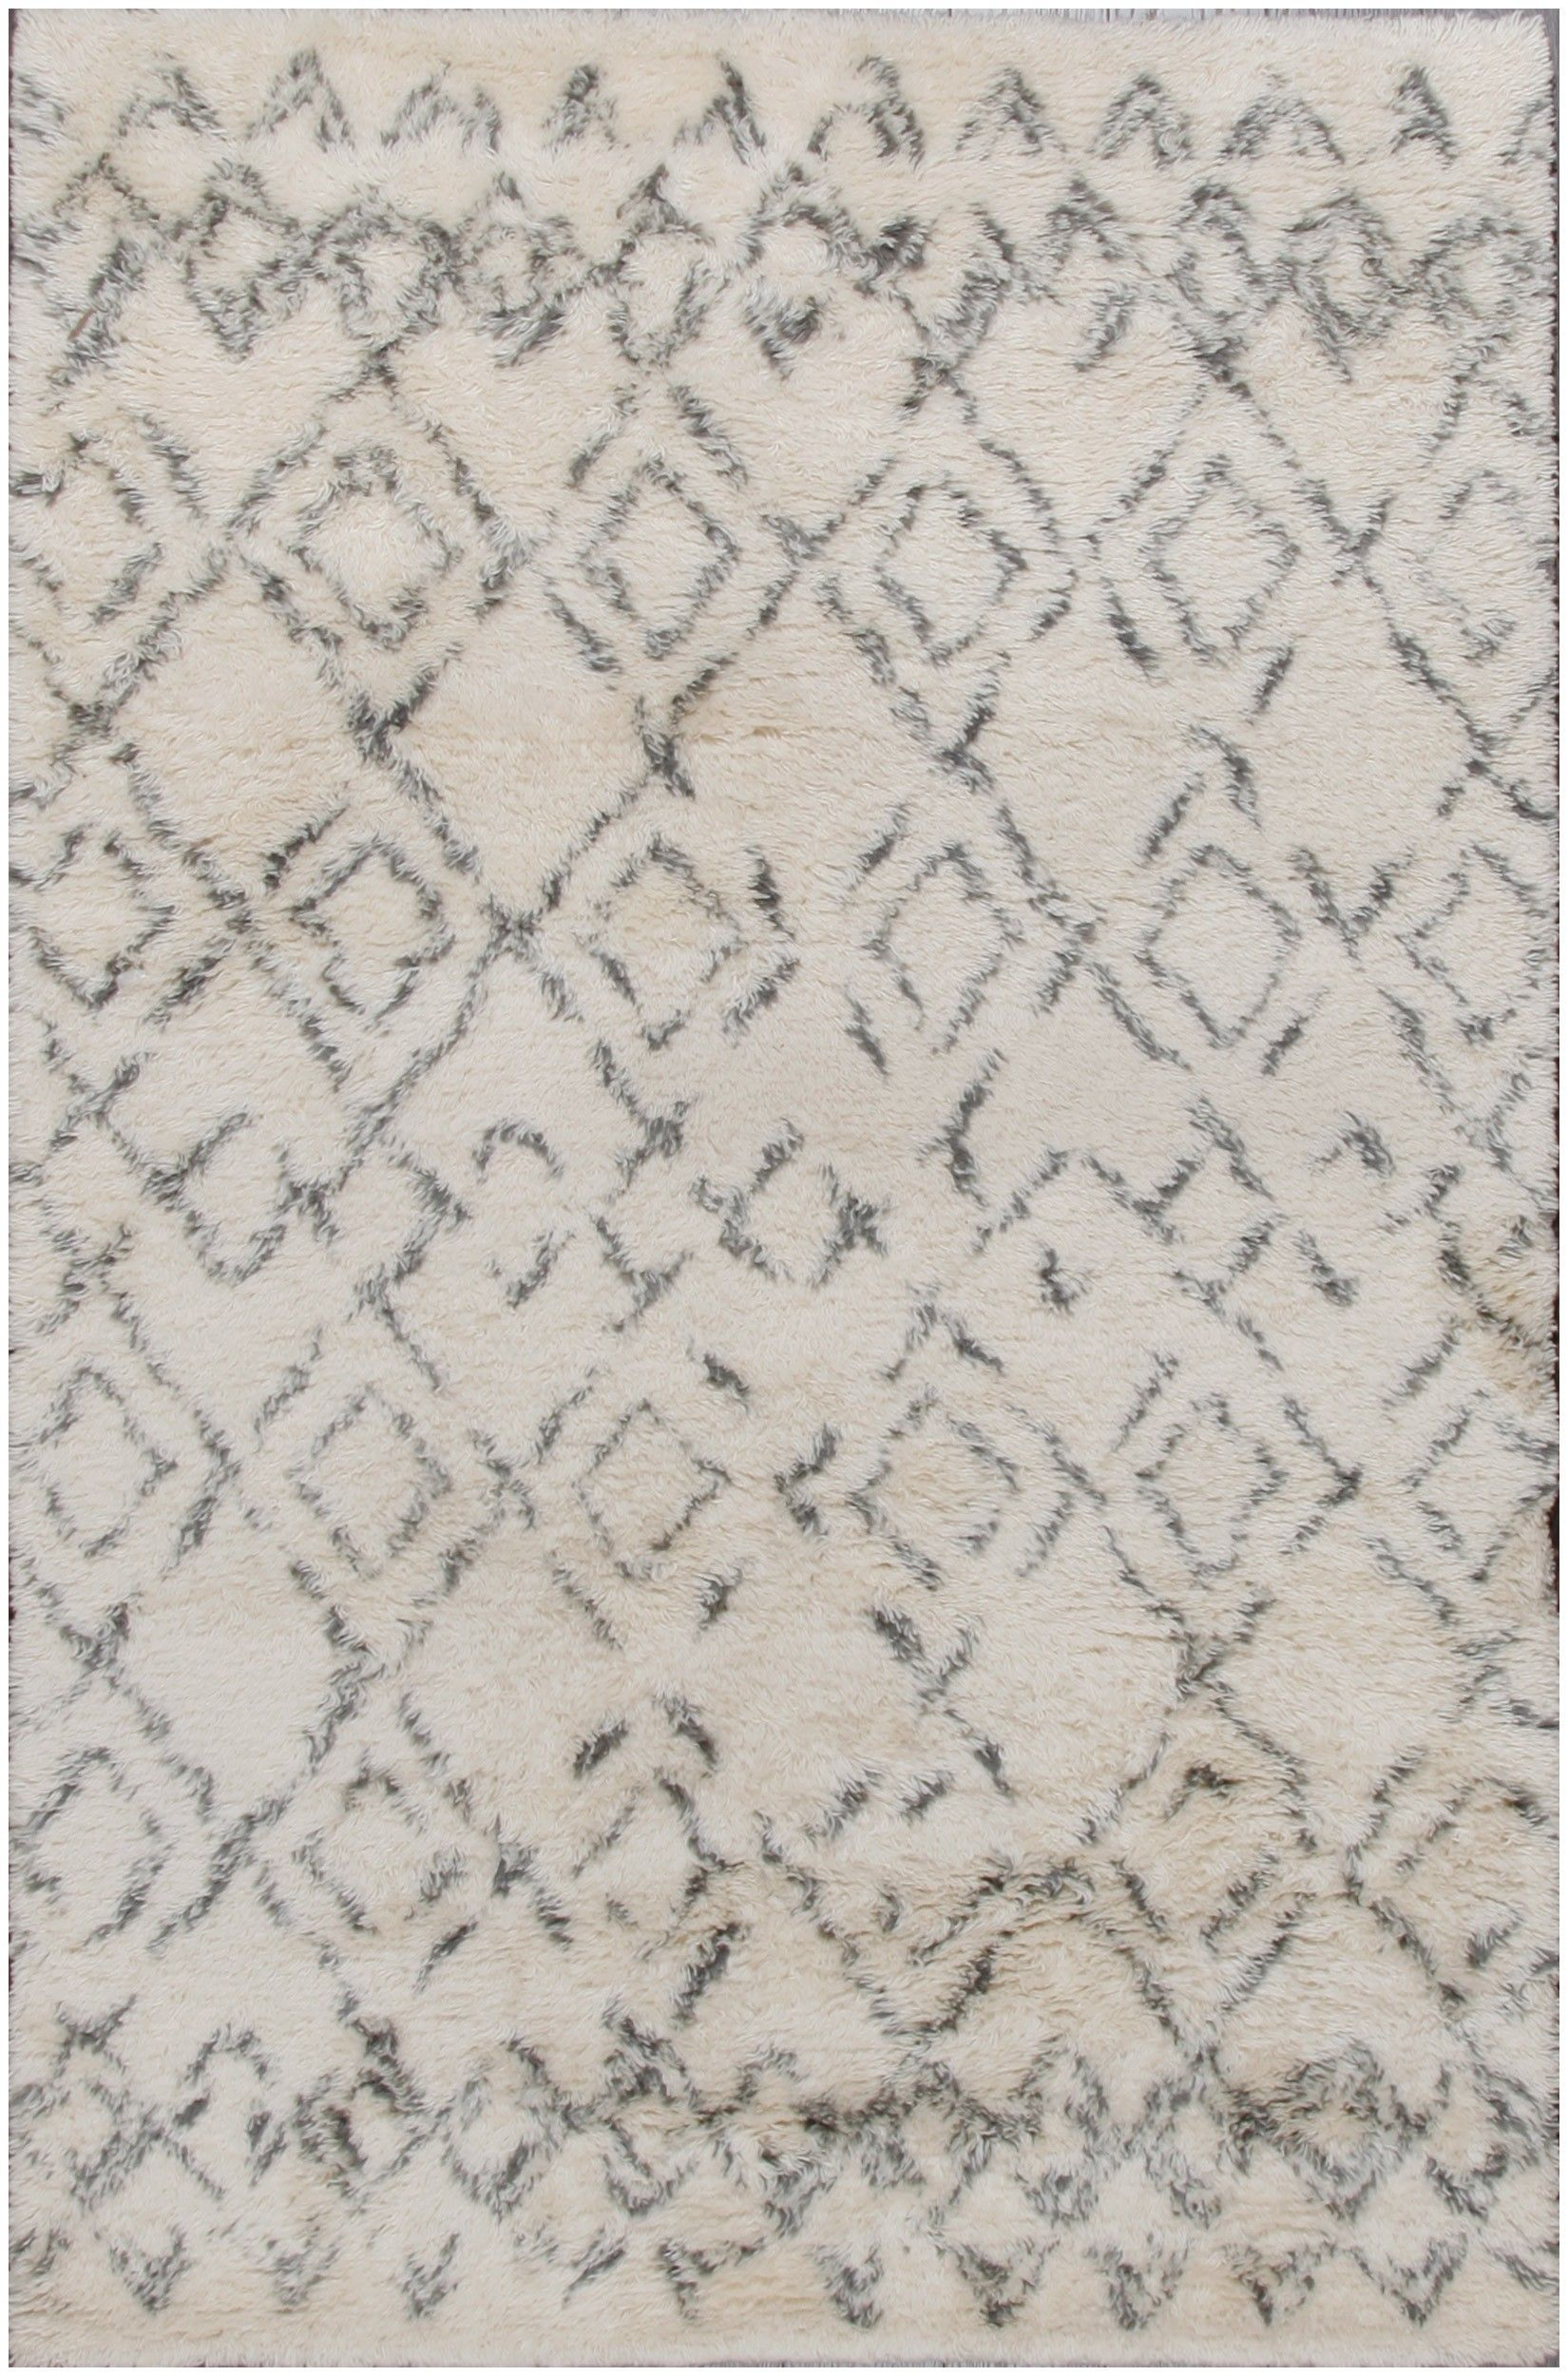 Oatmeal johnsen living room pinterest products rugs and wool - Moroccan Beni Ourain Beige Wool Rug 12186